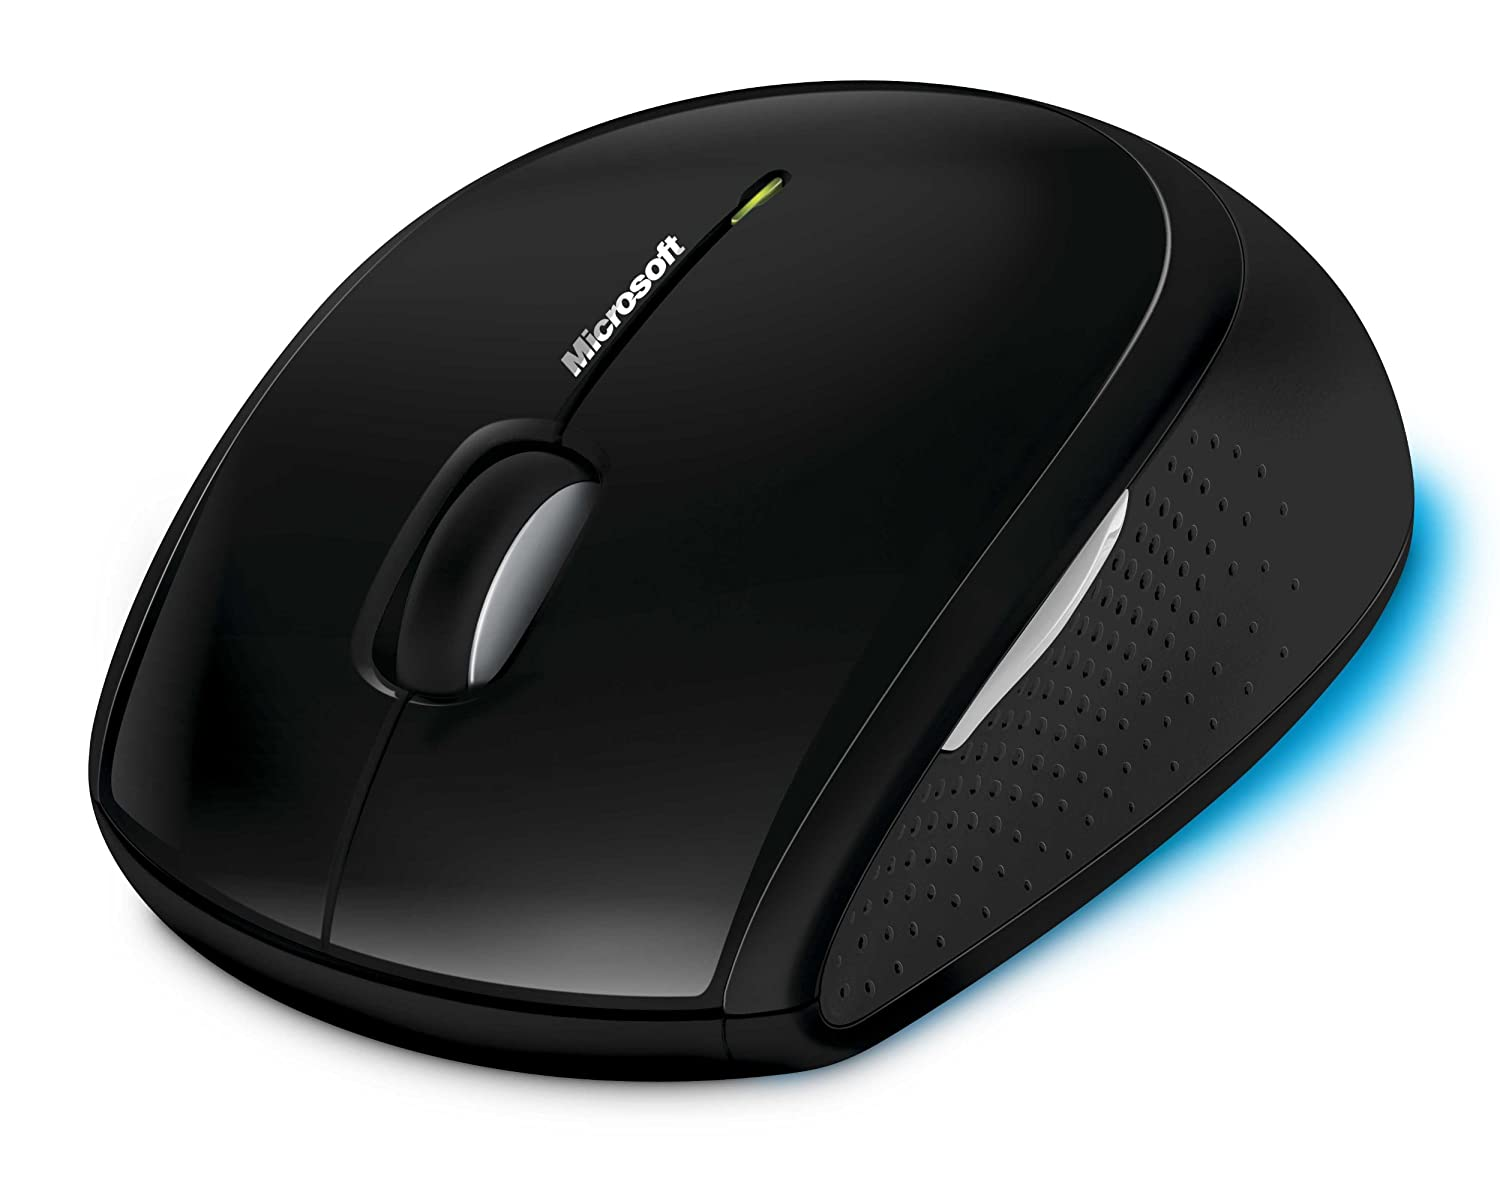 c8a4182c073 Microsoft Wireless Mouse 5000: Amazon.co.uk: Computers & Accessories